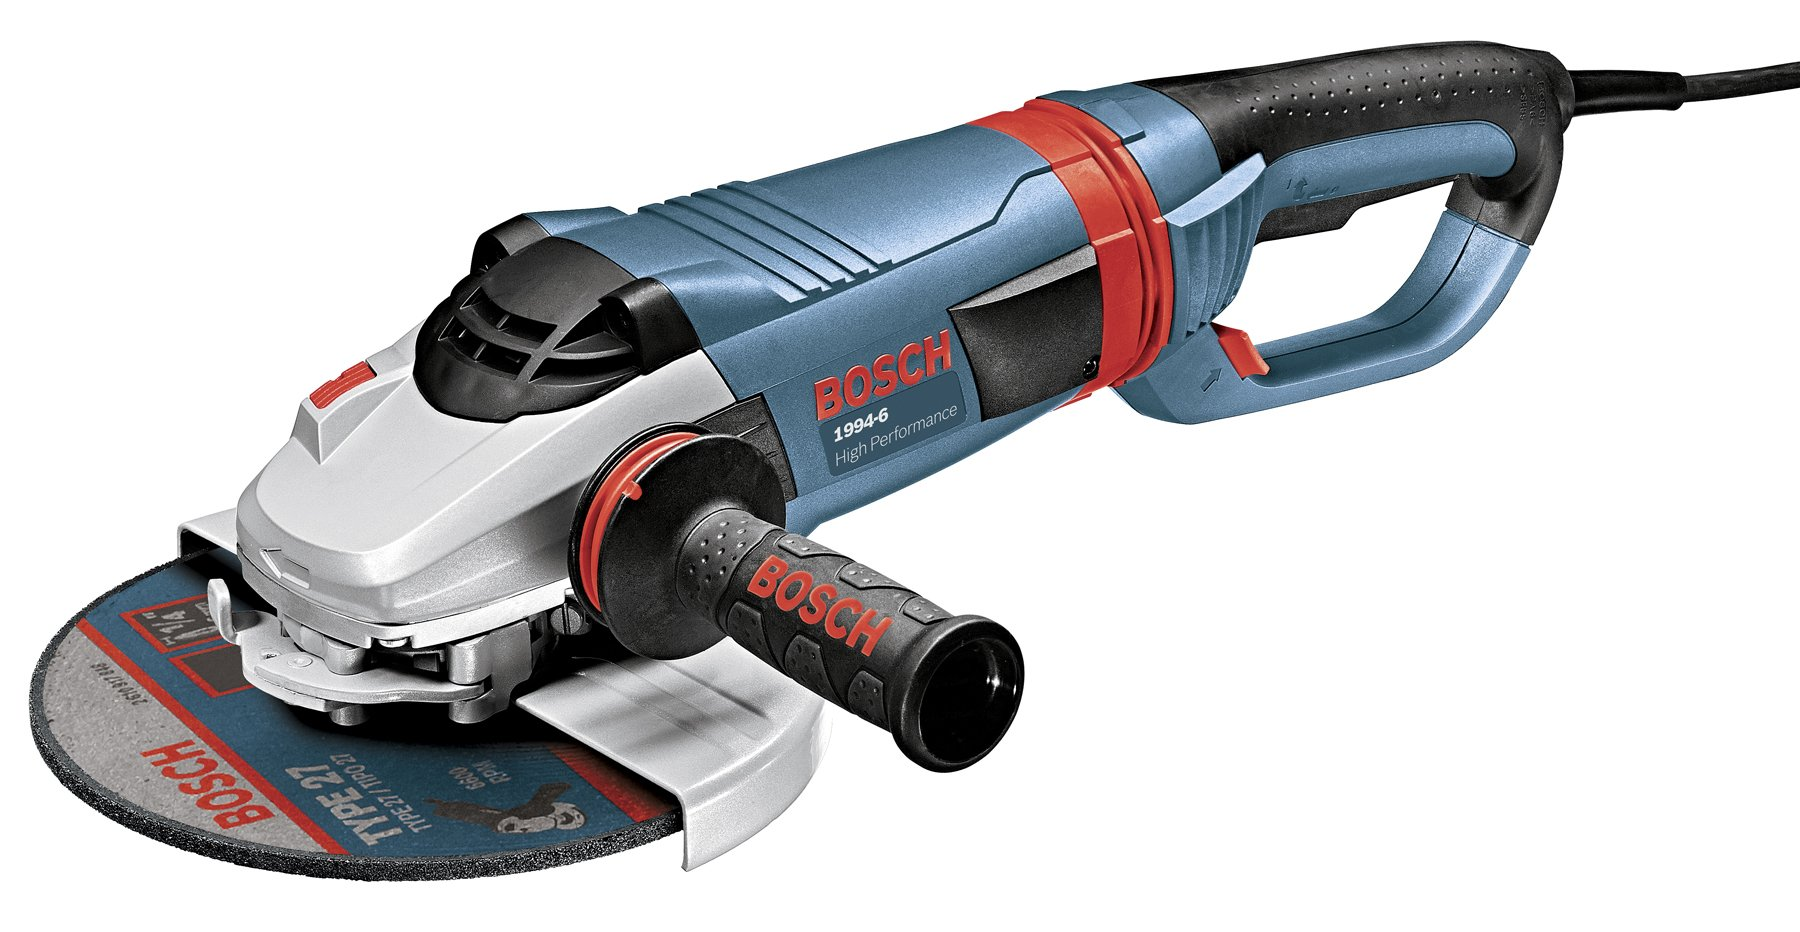 Bosch 1994-6 9-Inch Large Angle Grinder